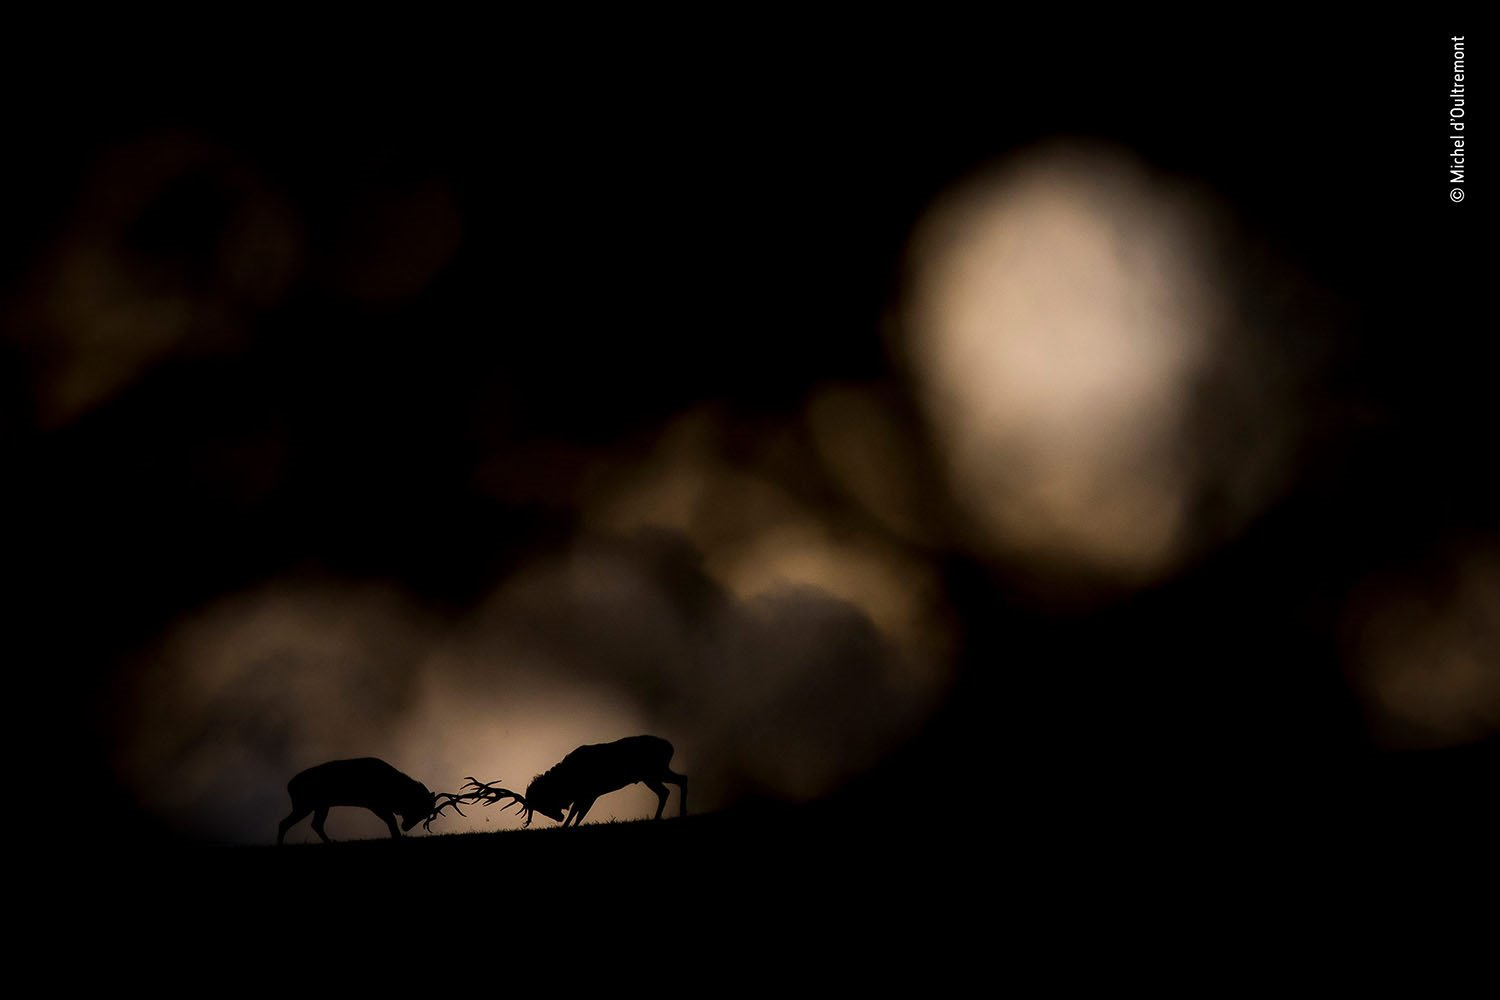 © Michel d'Oultremont - Wildlife Photographer of the Year. La noche del oso